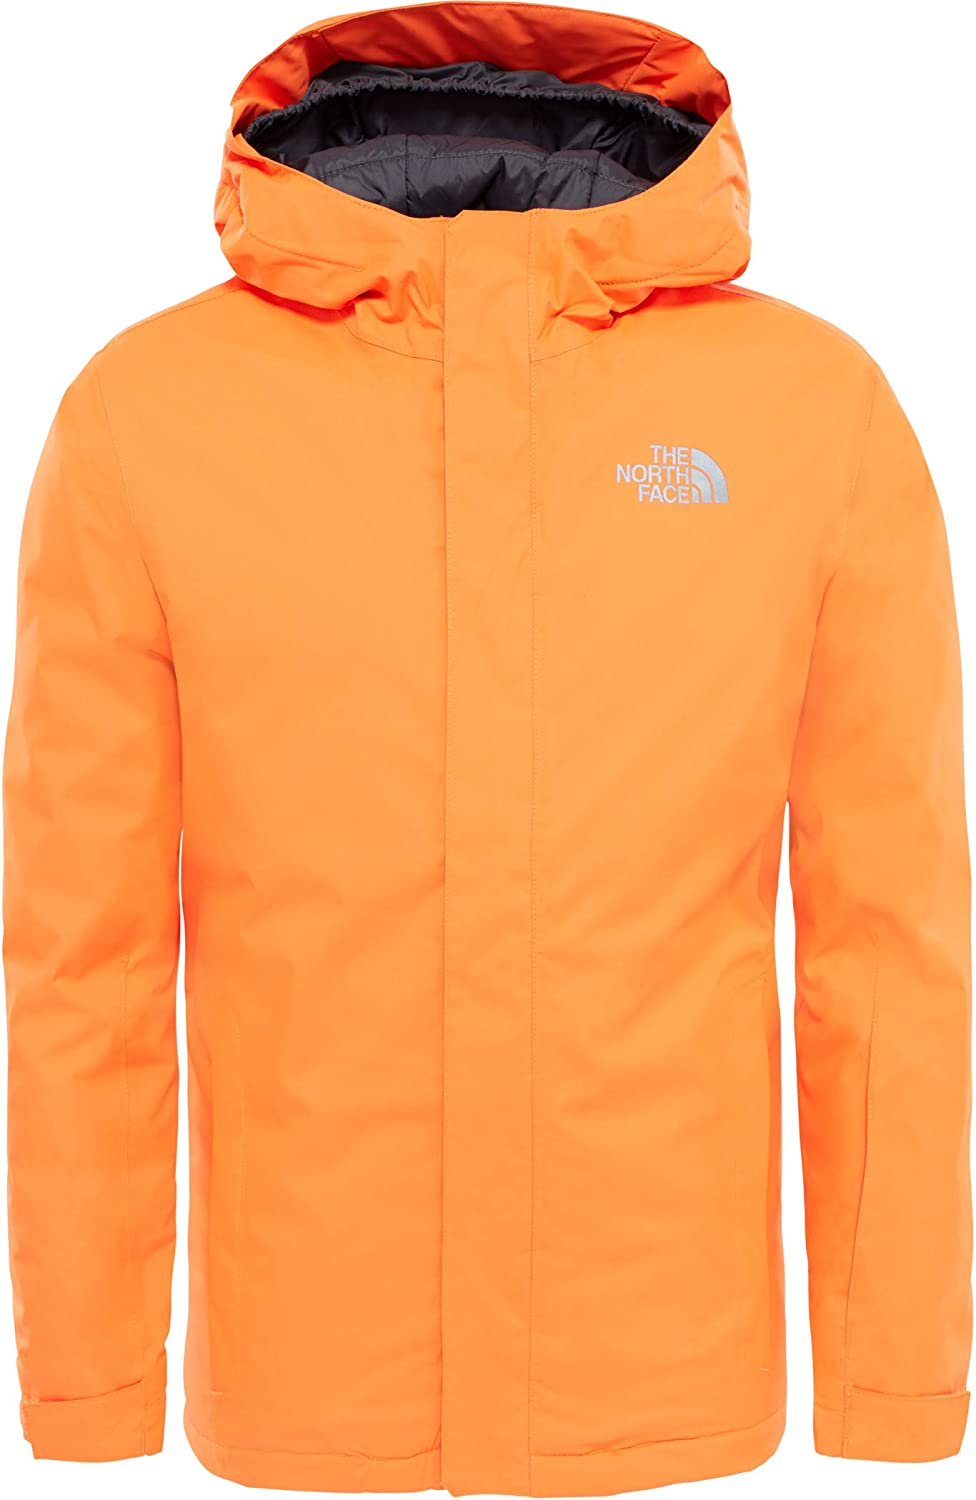 79f8d4428 closeout the north face y snowquest jacket rocket red 05923 2812e